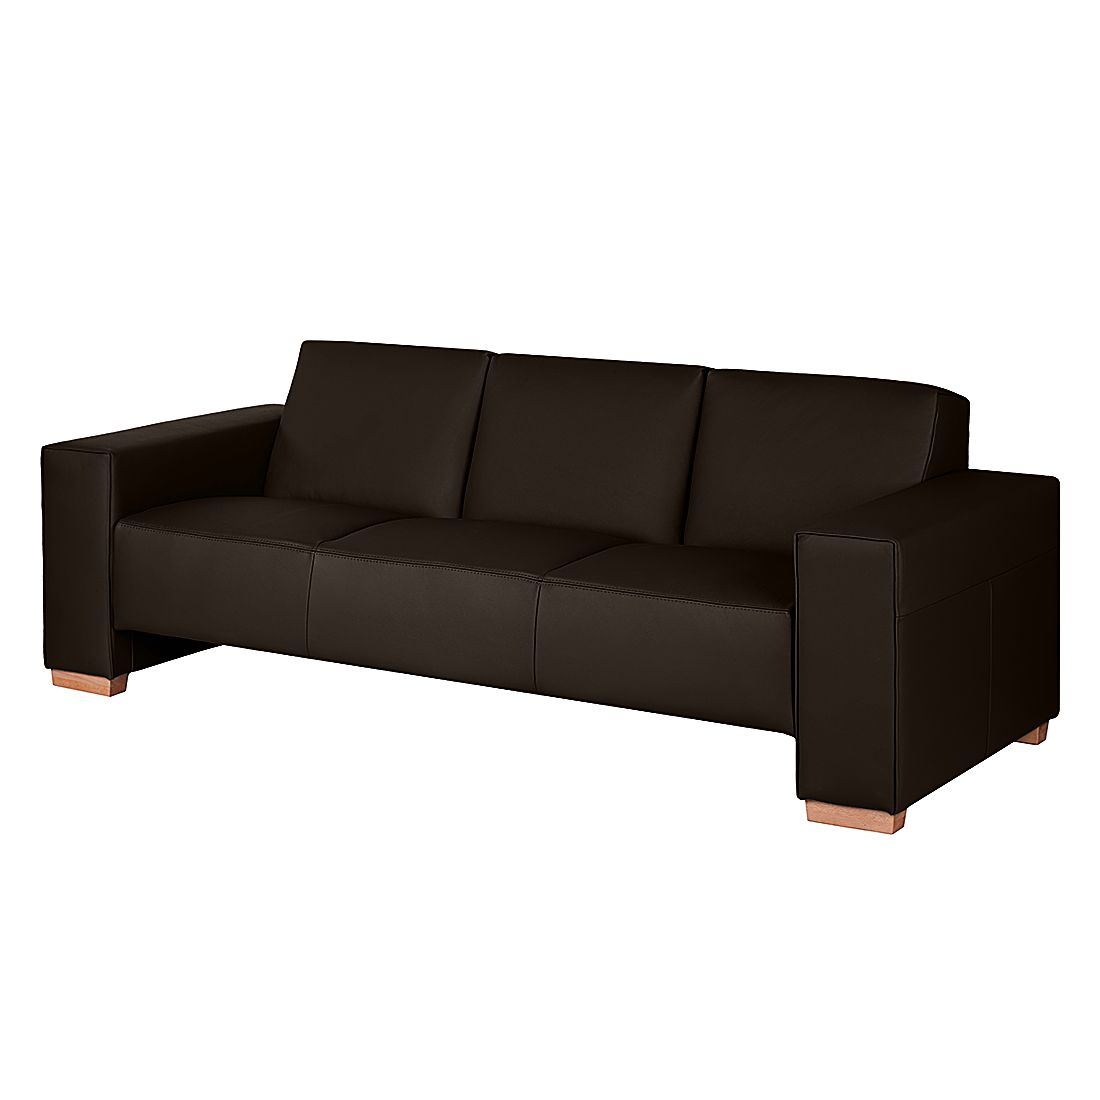 sofa midar 3 sitzer echtleder dunkelbraun roomscape online kaufen. Black Bedroom Furniture Sets. Home Design Ideas